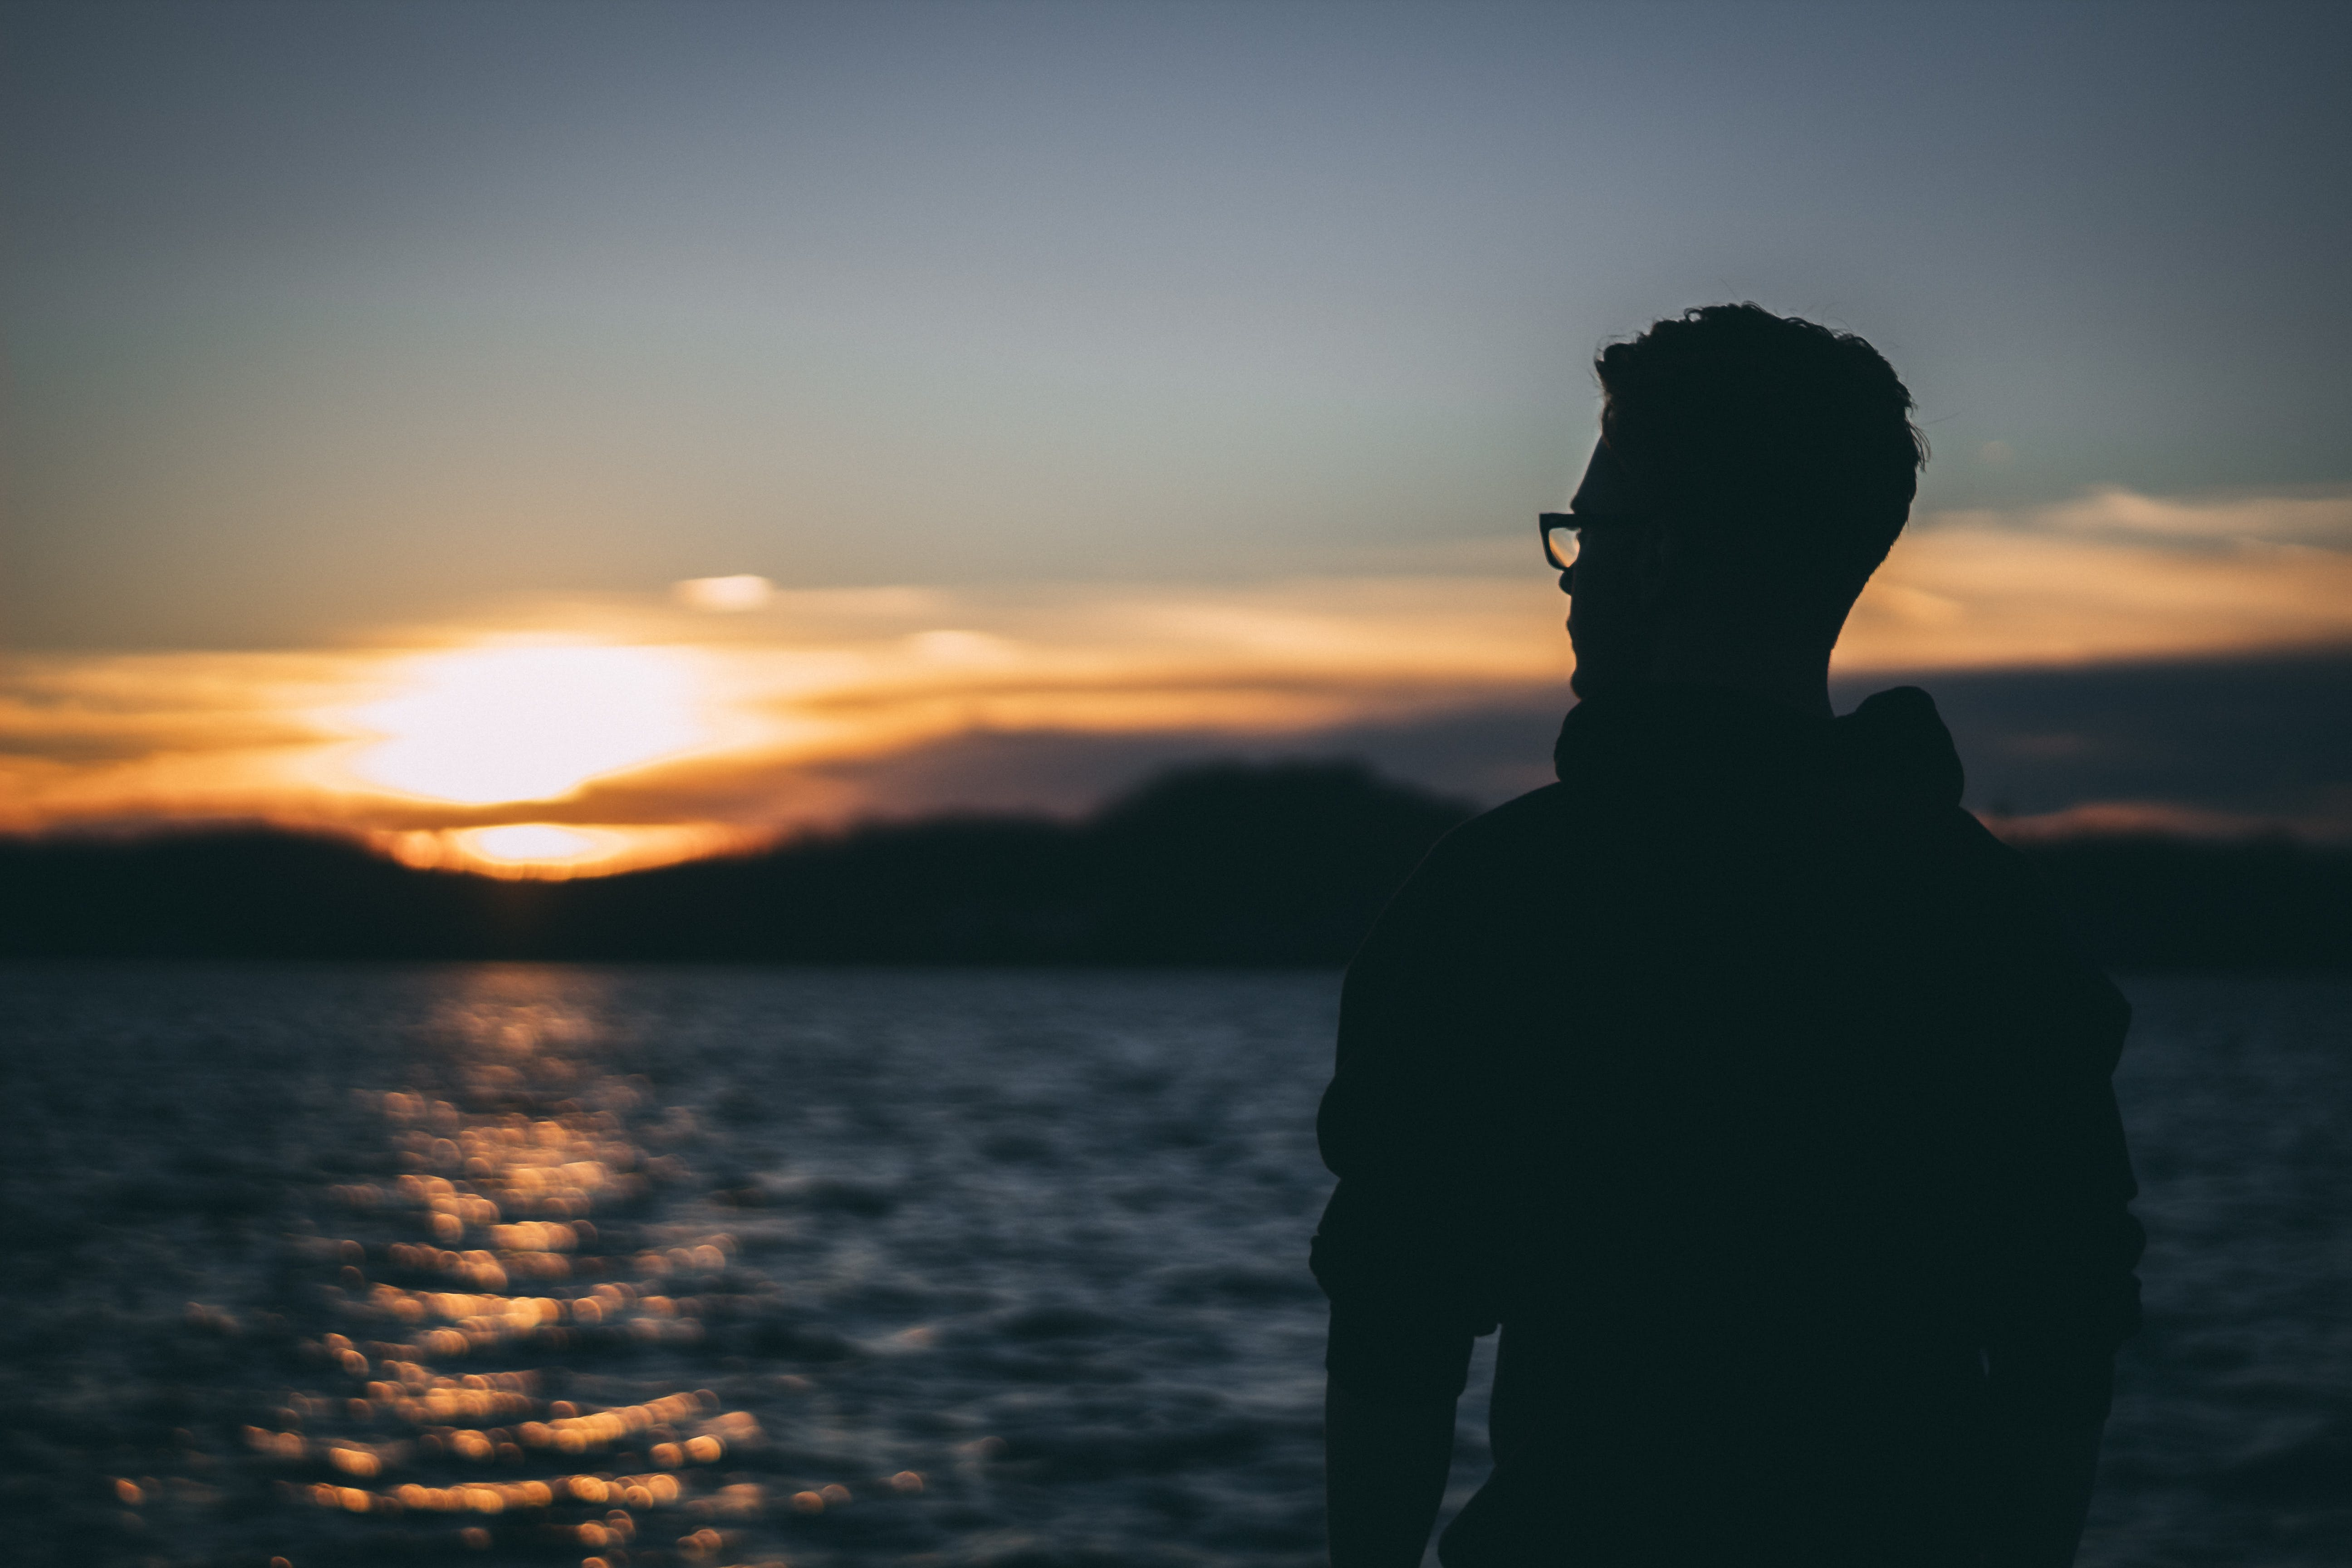 Silhouette of Man during Sunrise